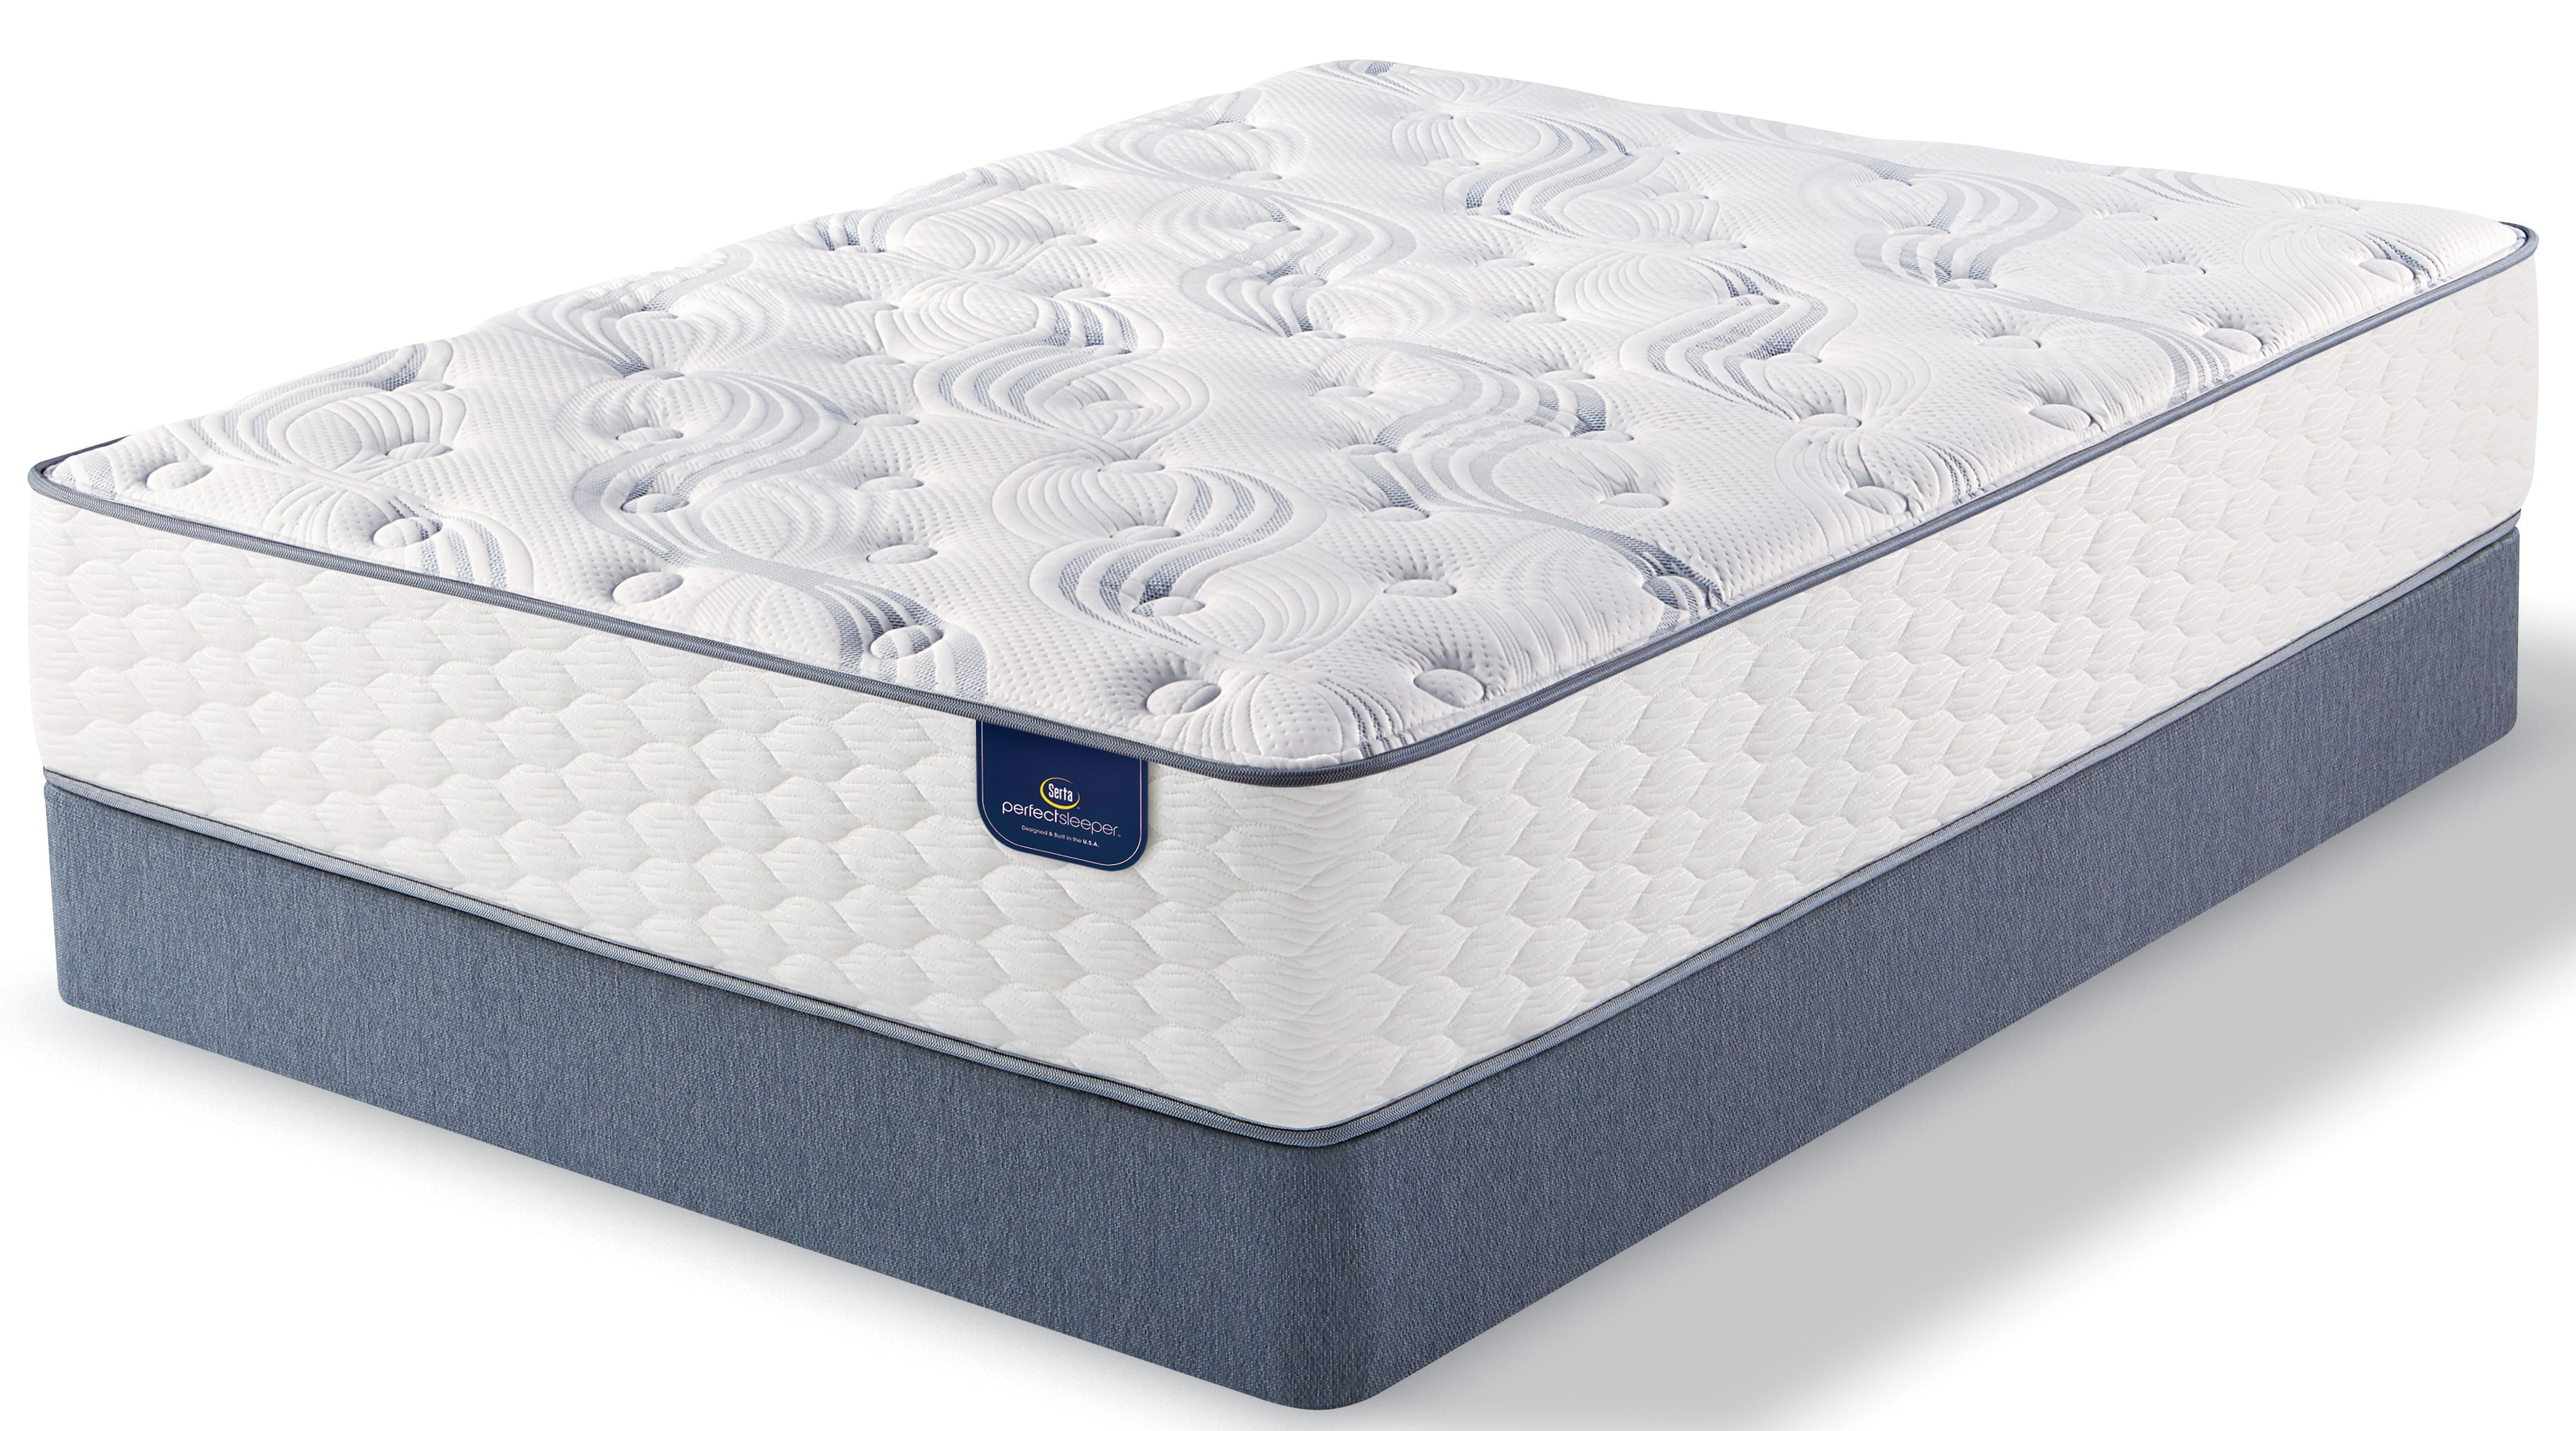 Signature Plush Queen Mattress and Boxspring